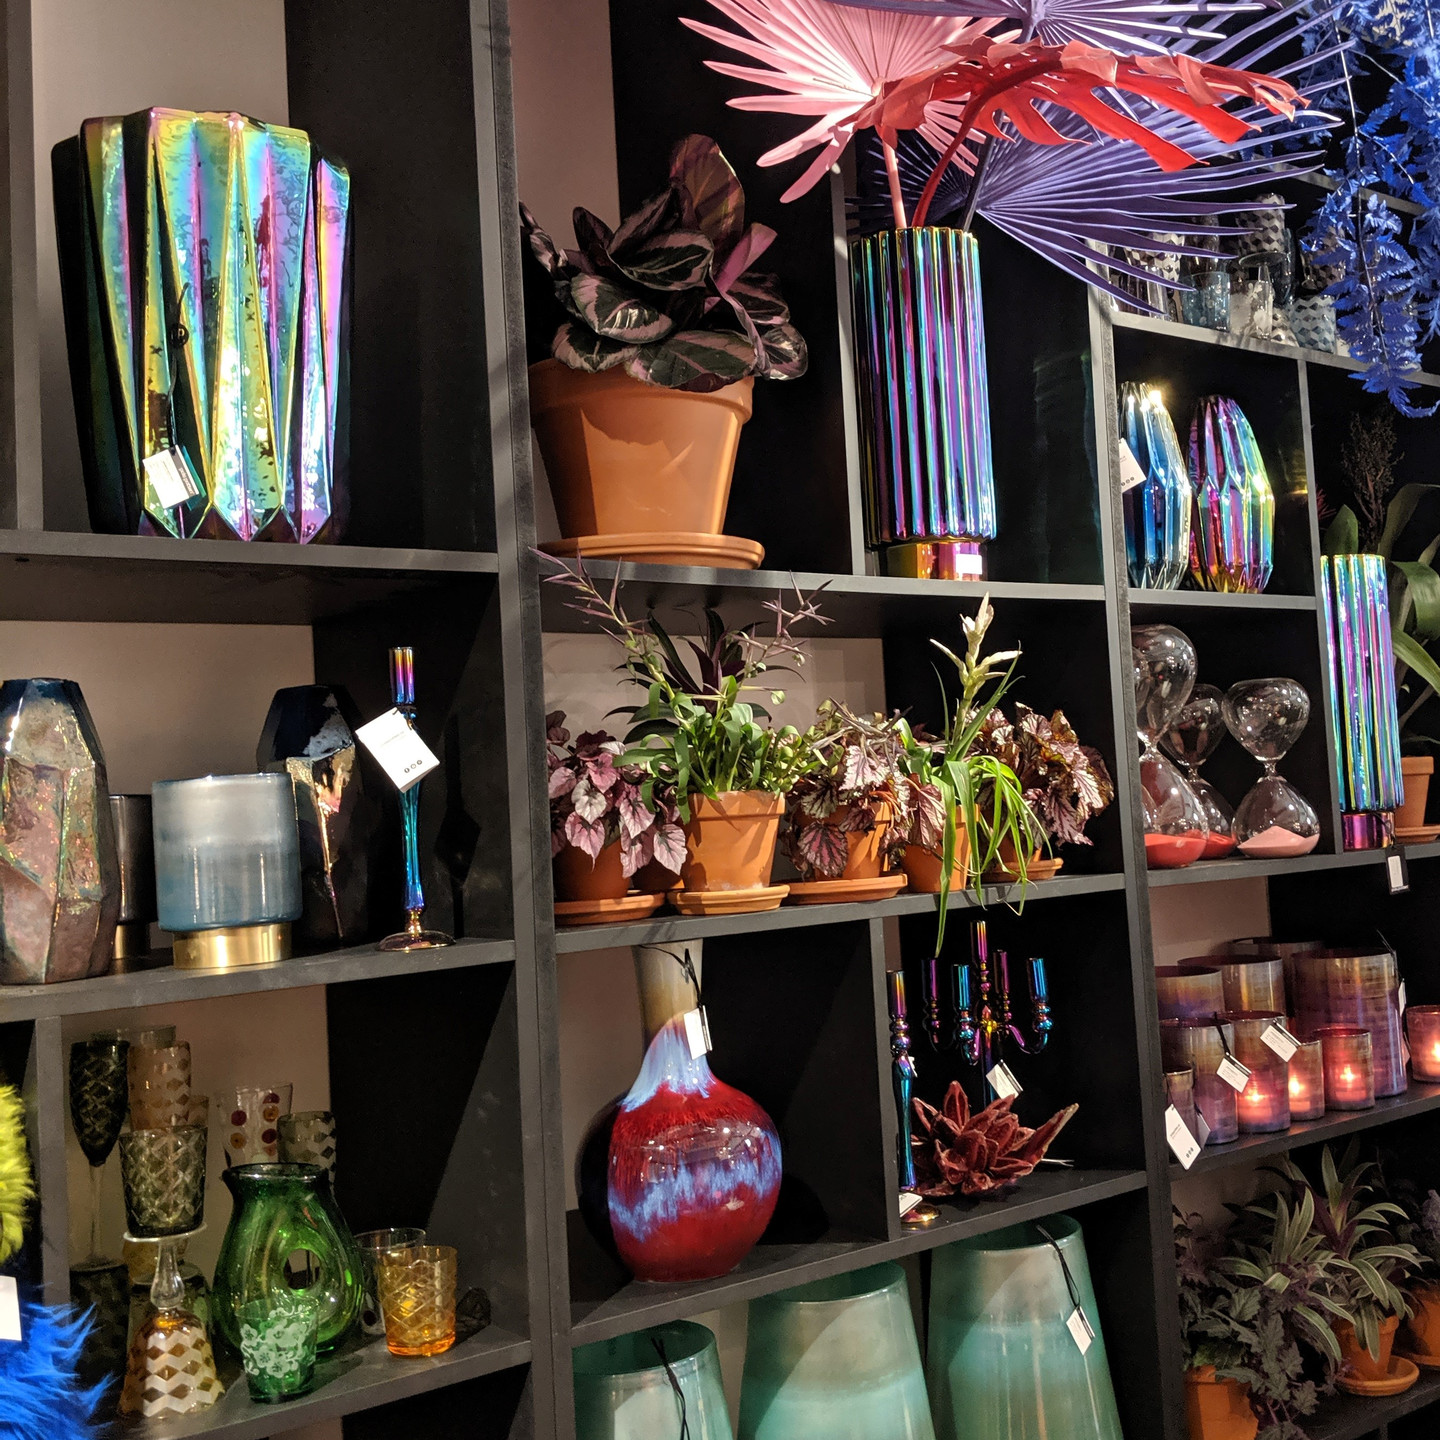 Home Decor Display with Assorted Iridescent